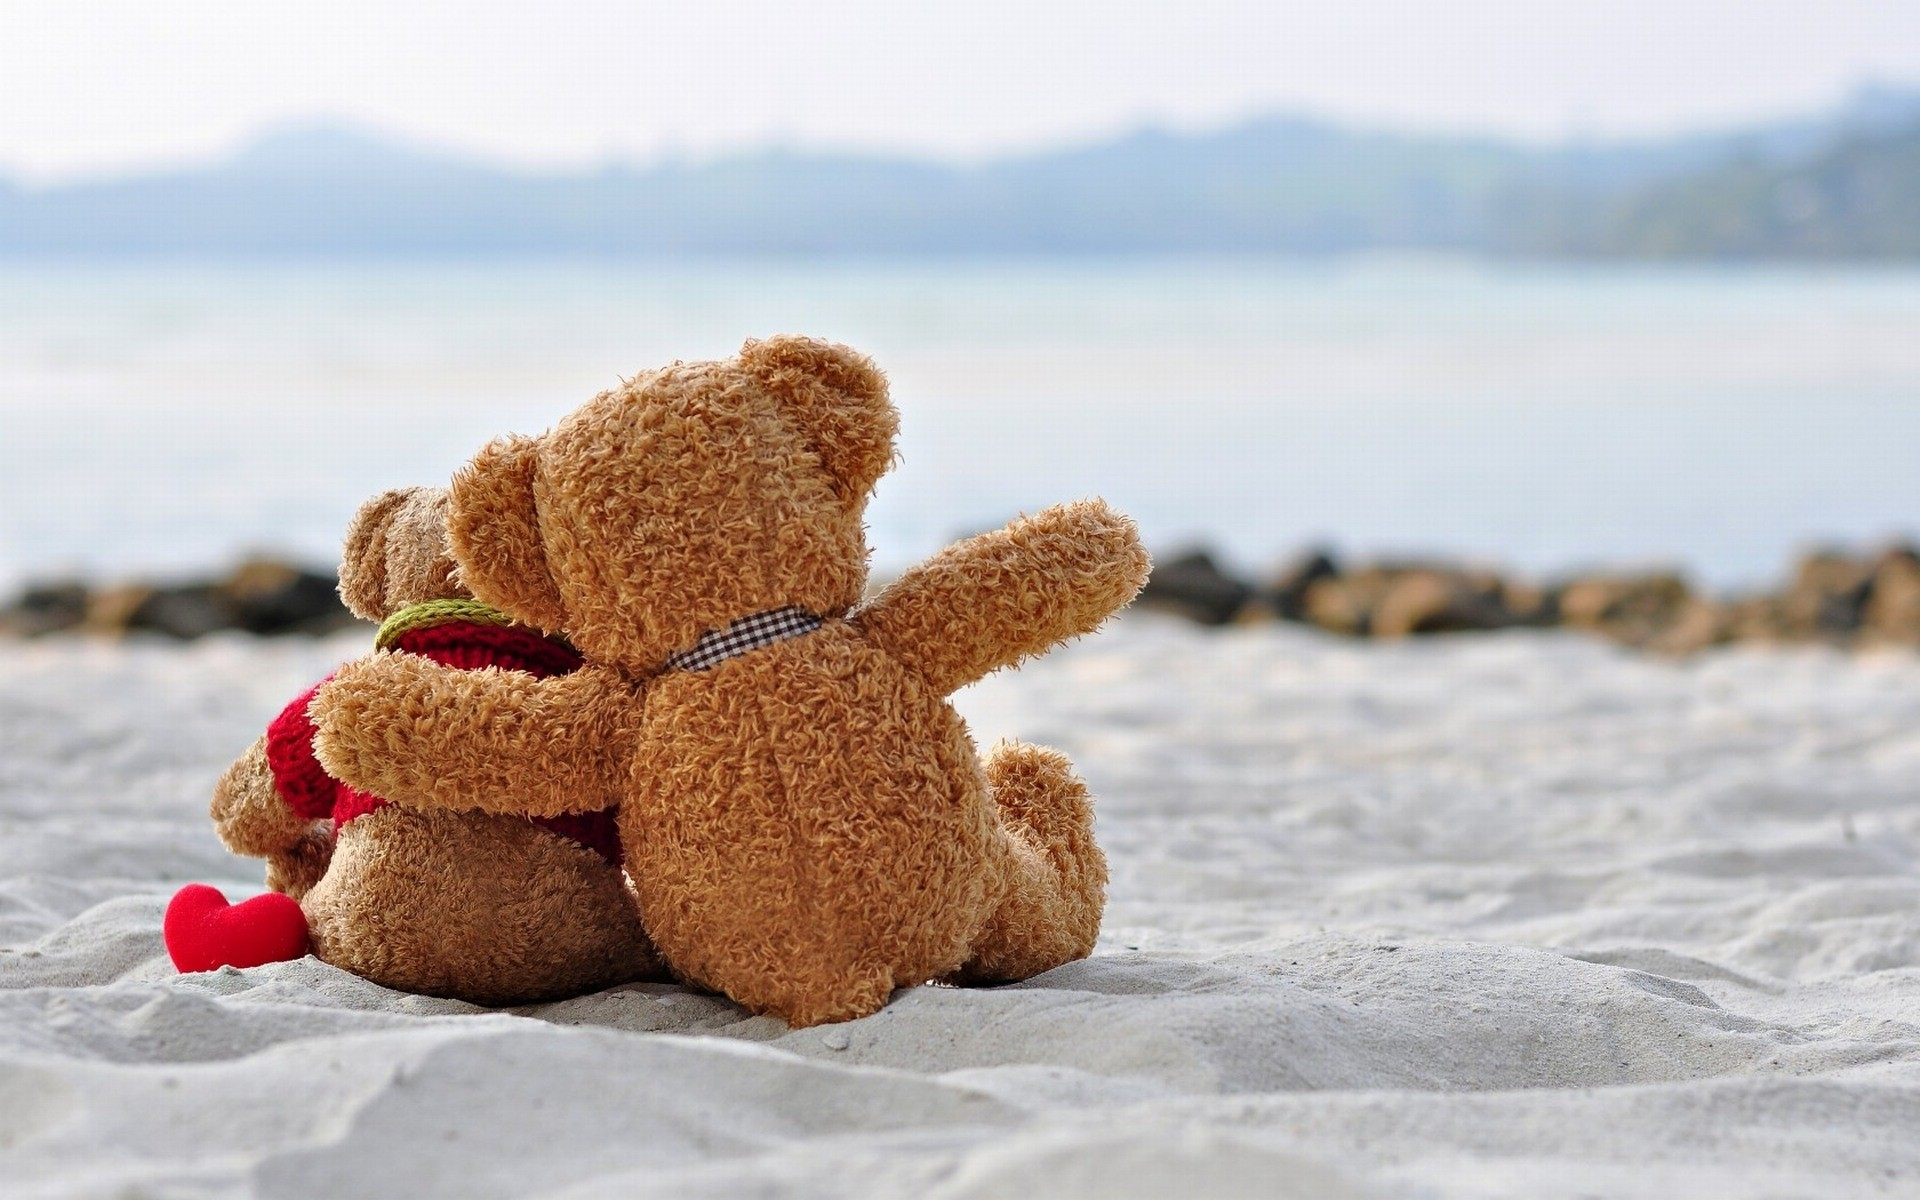 Cute Teddy Bears Wallpapers 59 Images